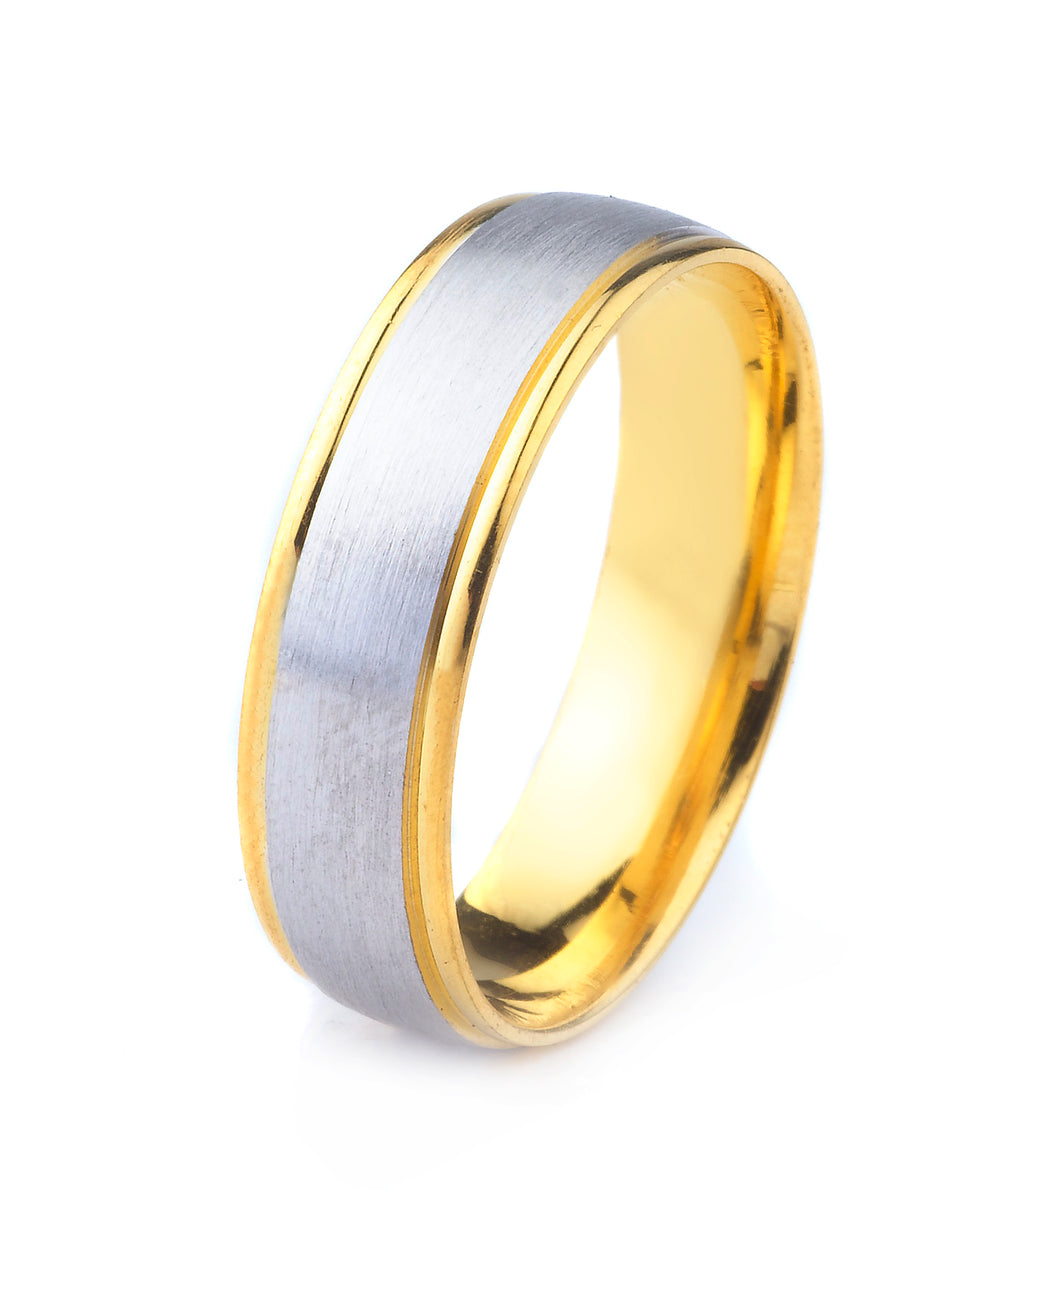 14K GOLD MENS TWO TONE WEDDING BAND WITH POLISHED EDGES AND SATIN FINISH